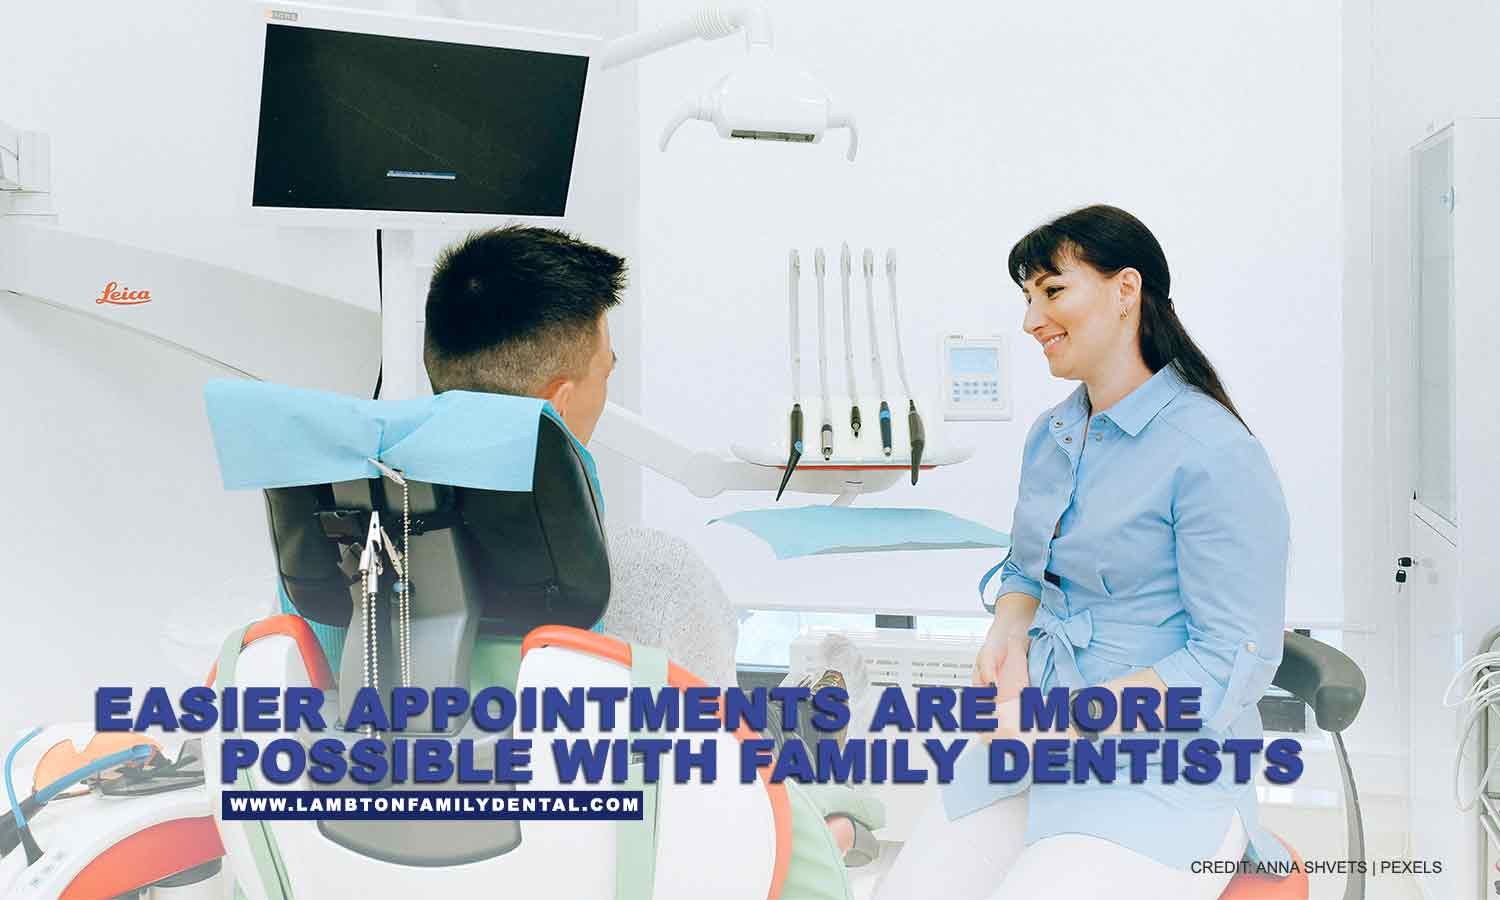 Easier appointments